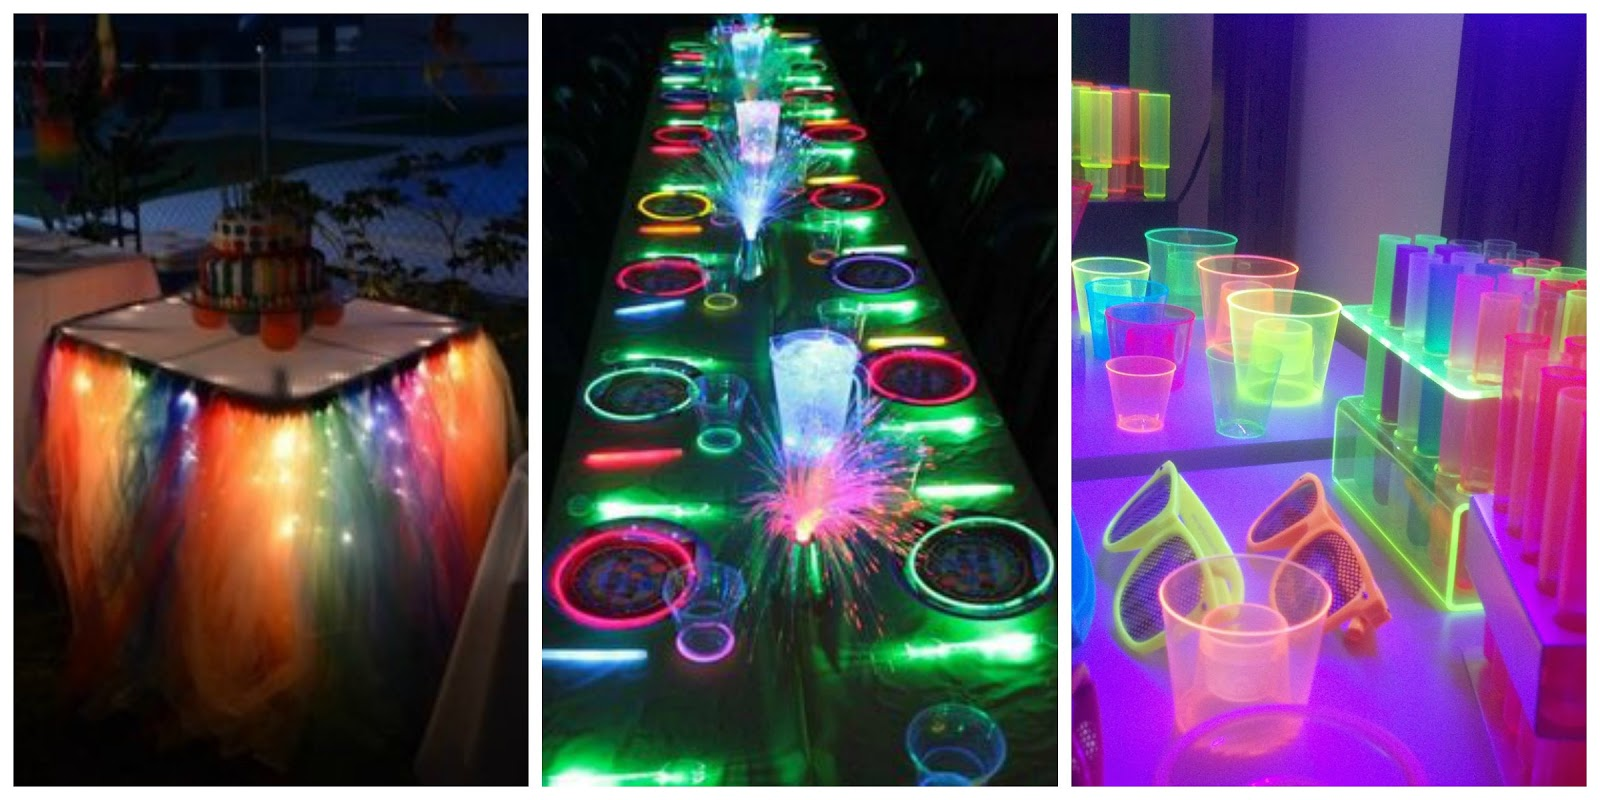 Neon Party Ideas Para La Decoracion Outfit Y Accesorios Artes